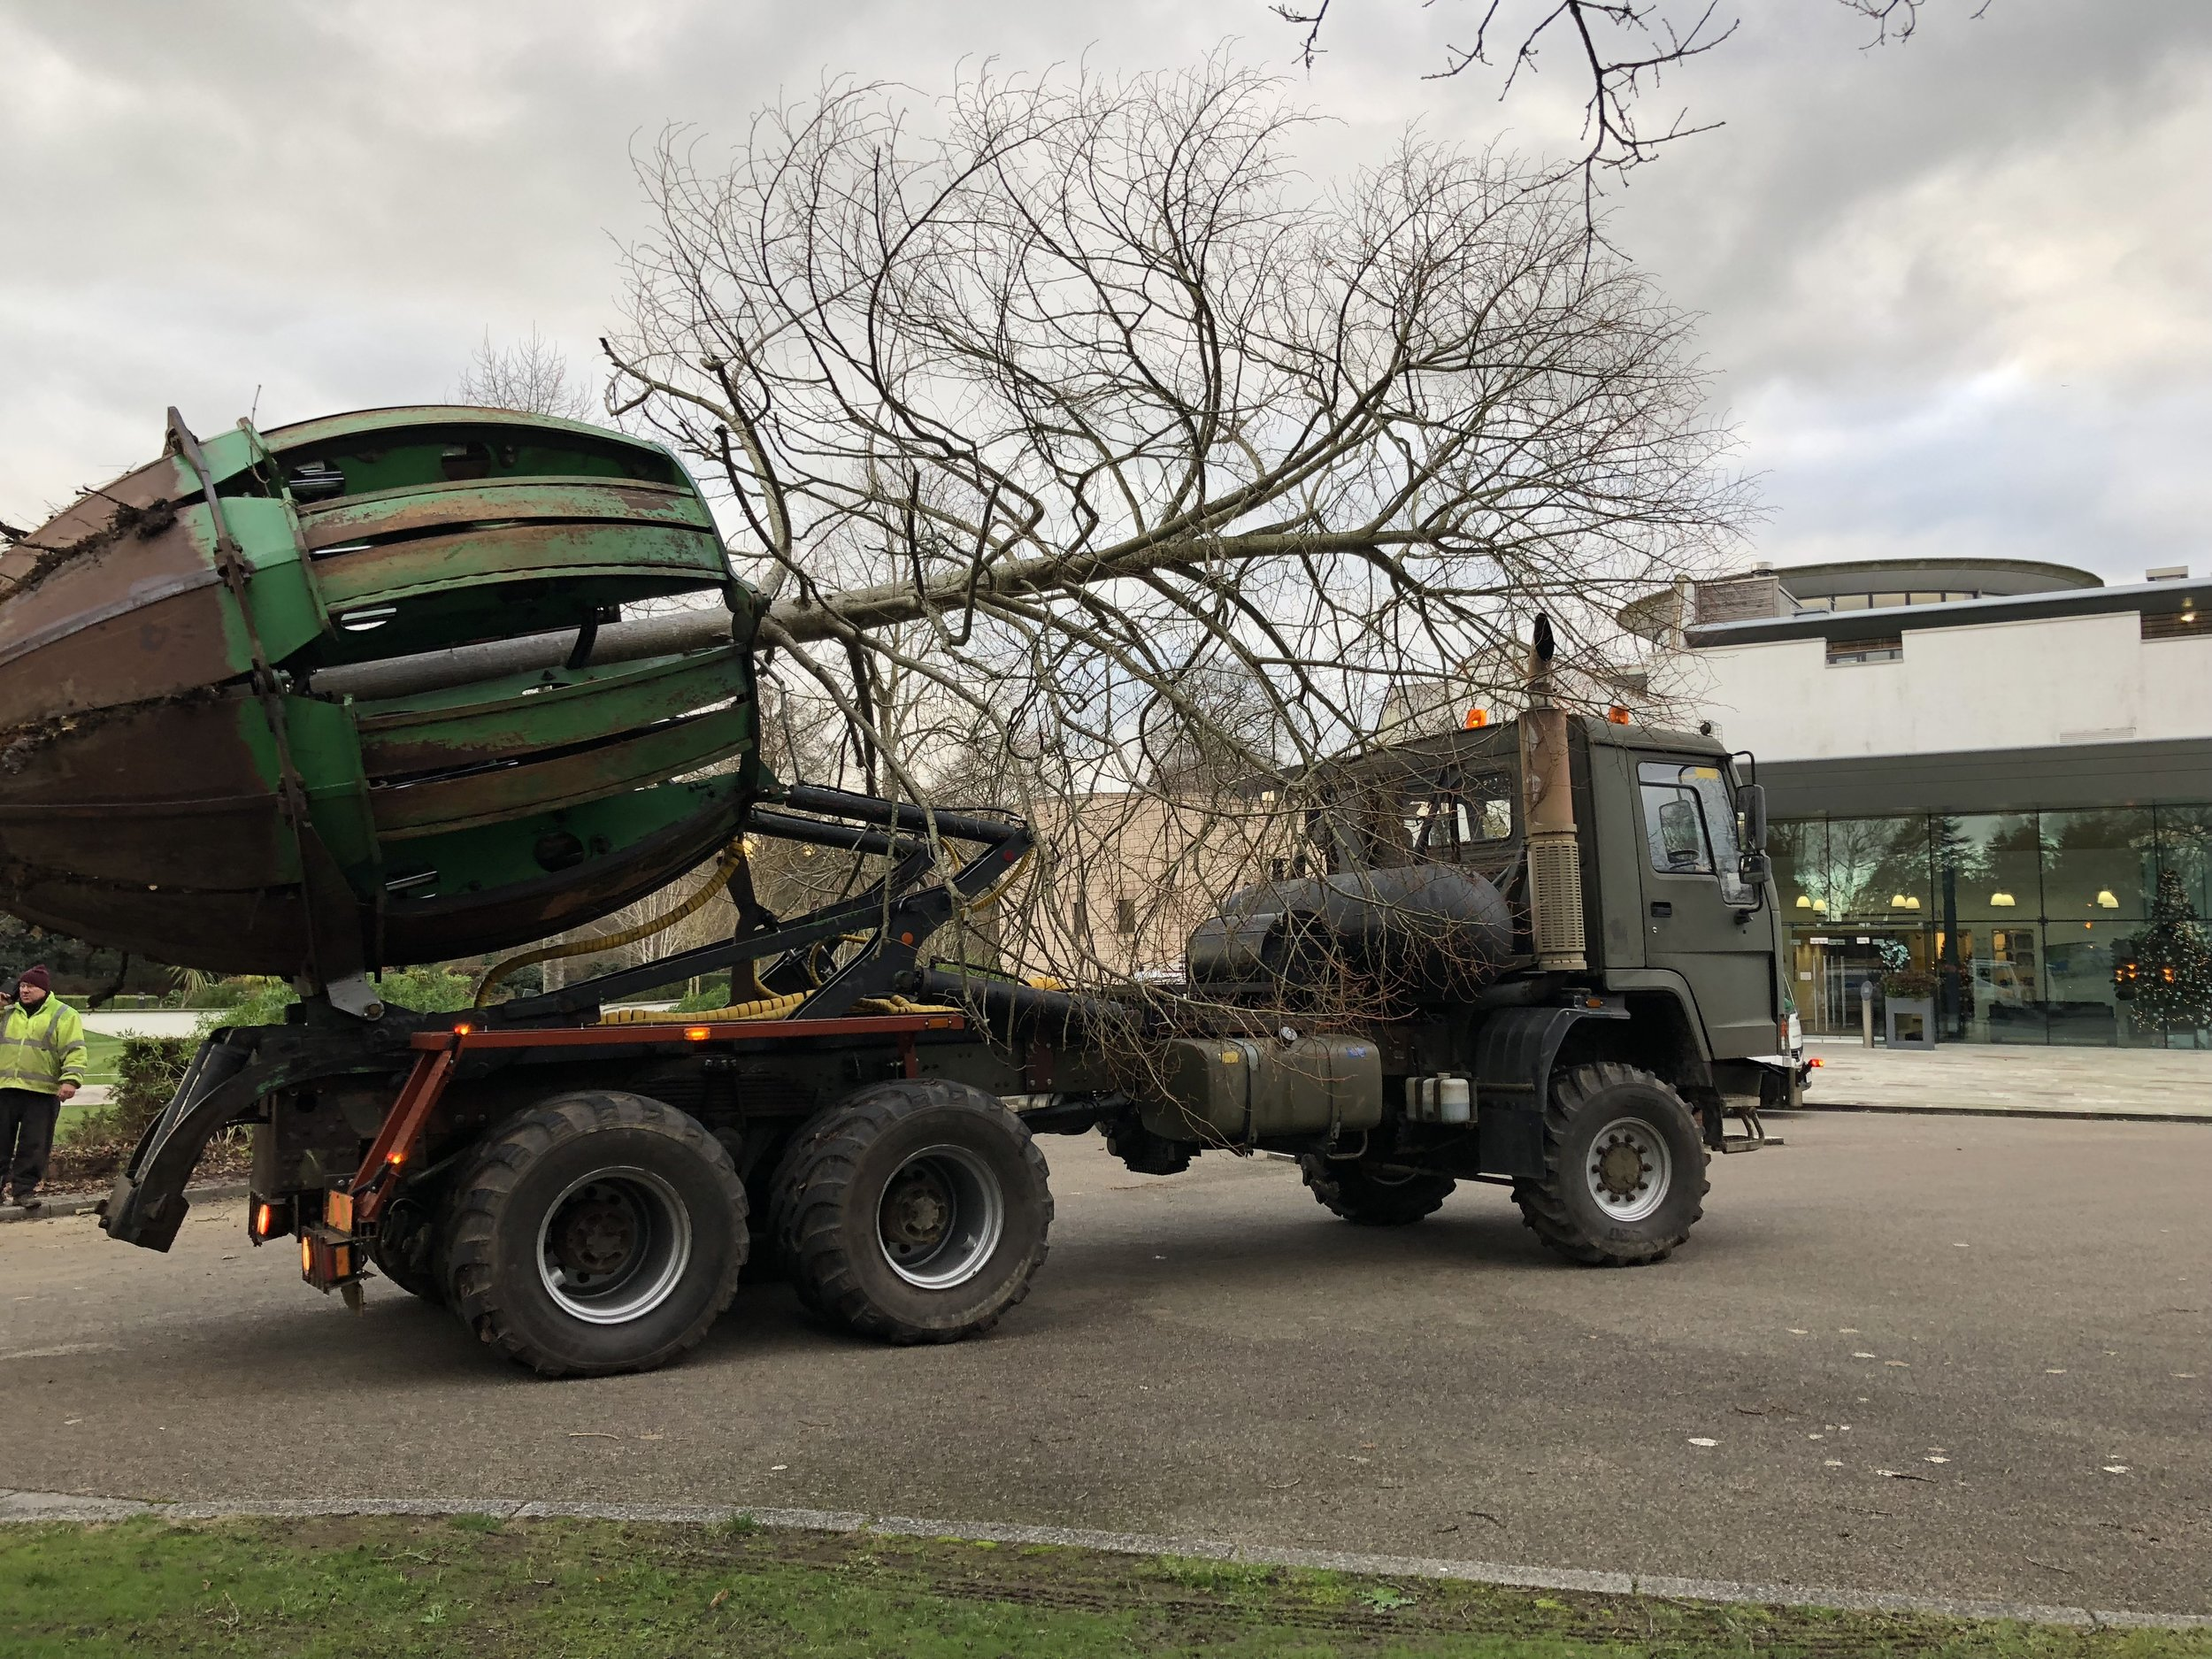 heritage-tree-services-spade-truck-03a.jpg